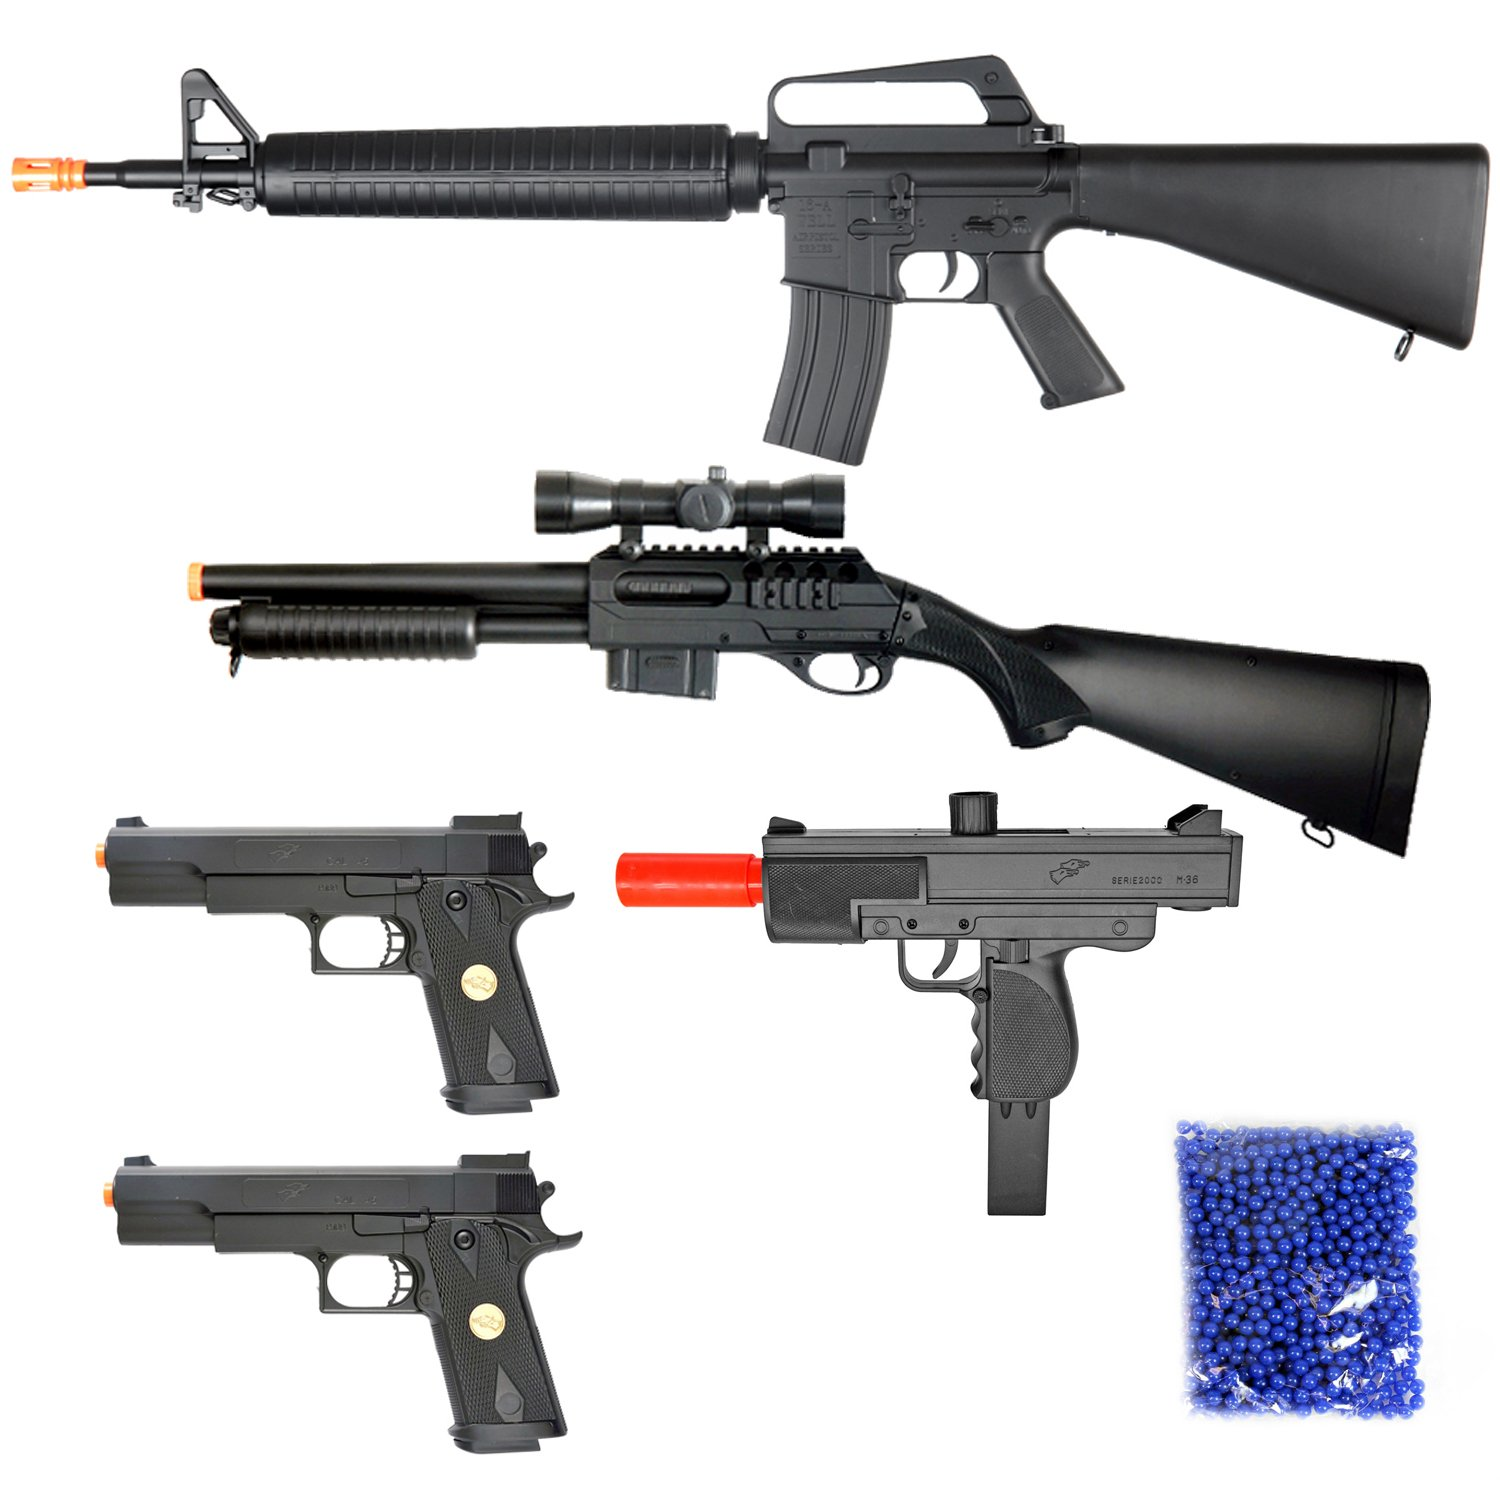 BBTac Airsoft Package - Lot of 5 Airsoft Guns Sniper Rifle Shotgun Machine  Pistols & 1,000 6mm Bbs